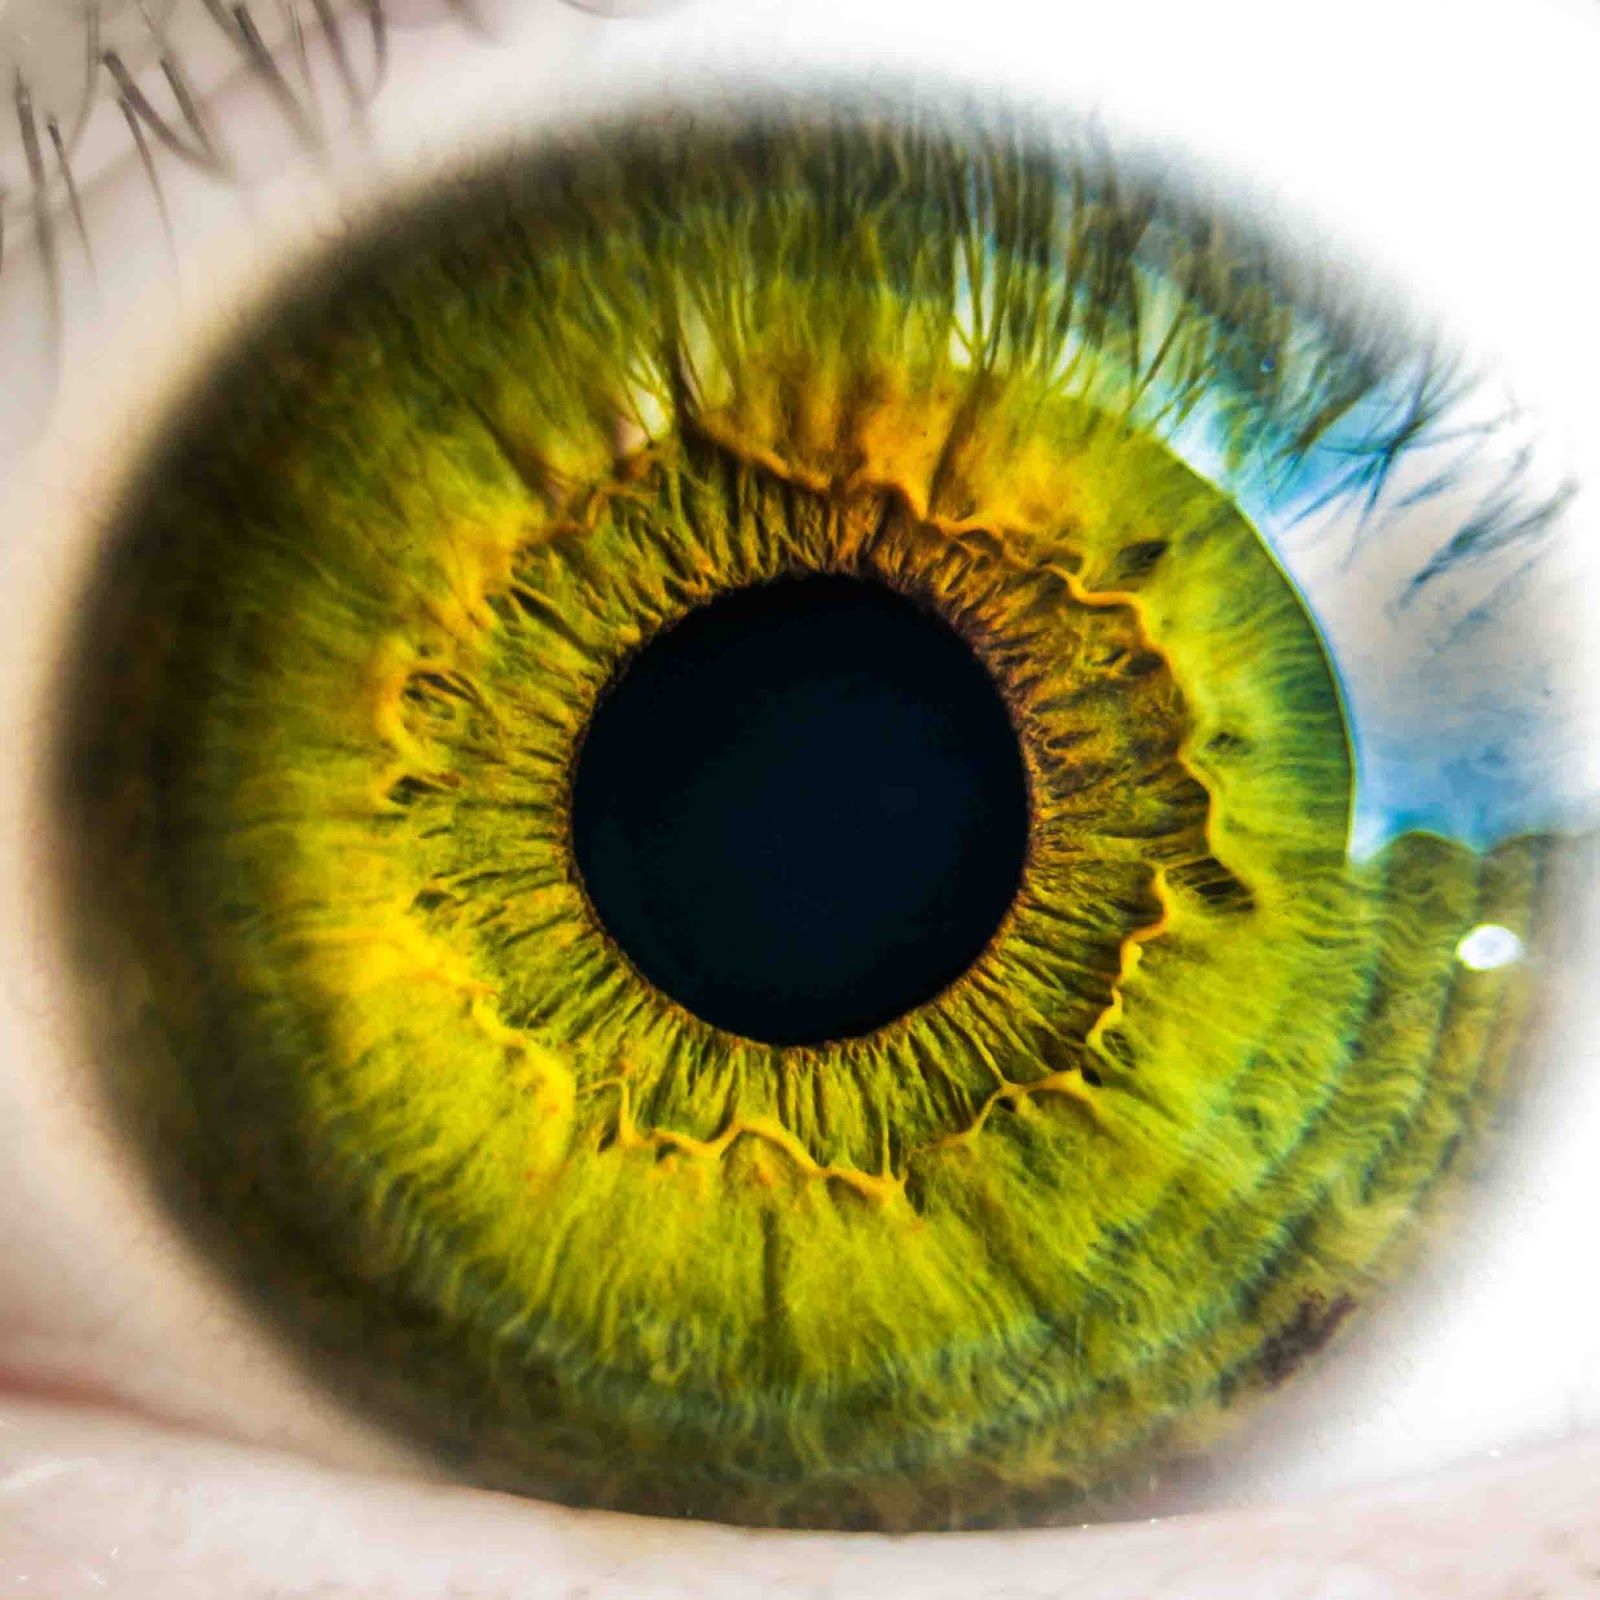 Everyday habits that may cause serious problem for your eye health